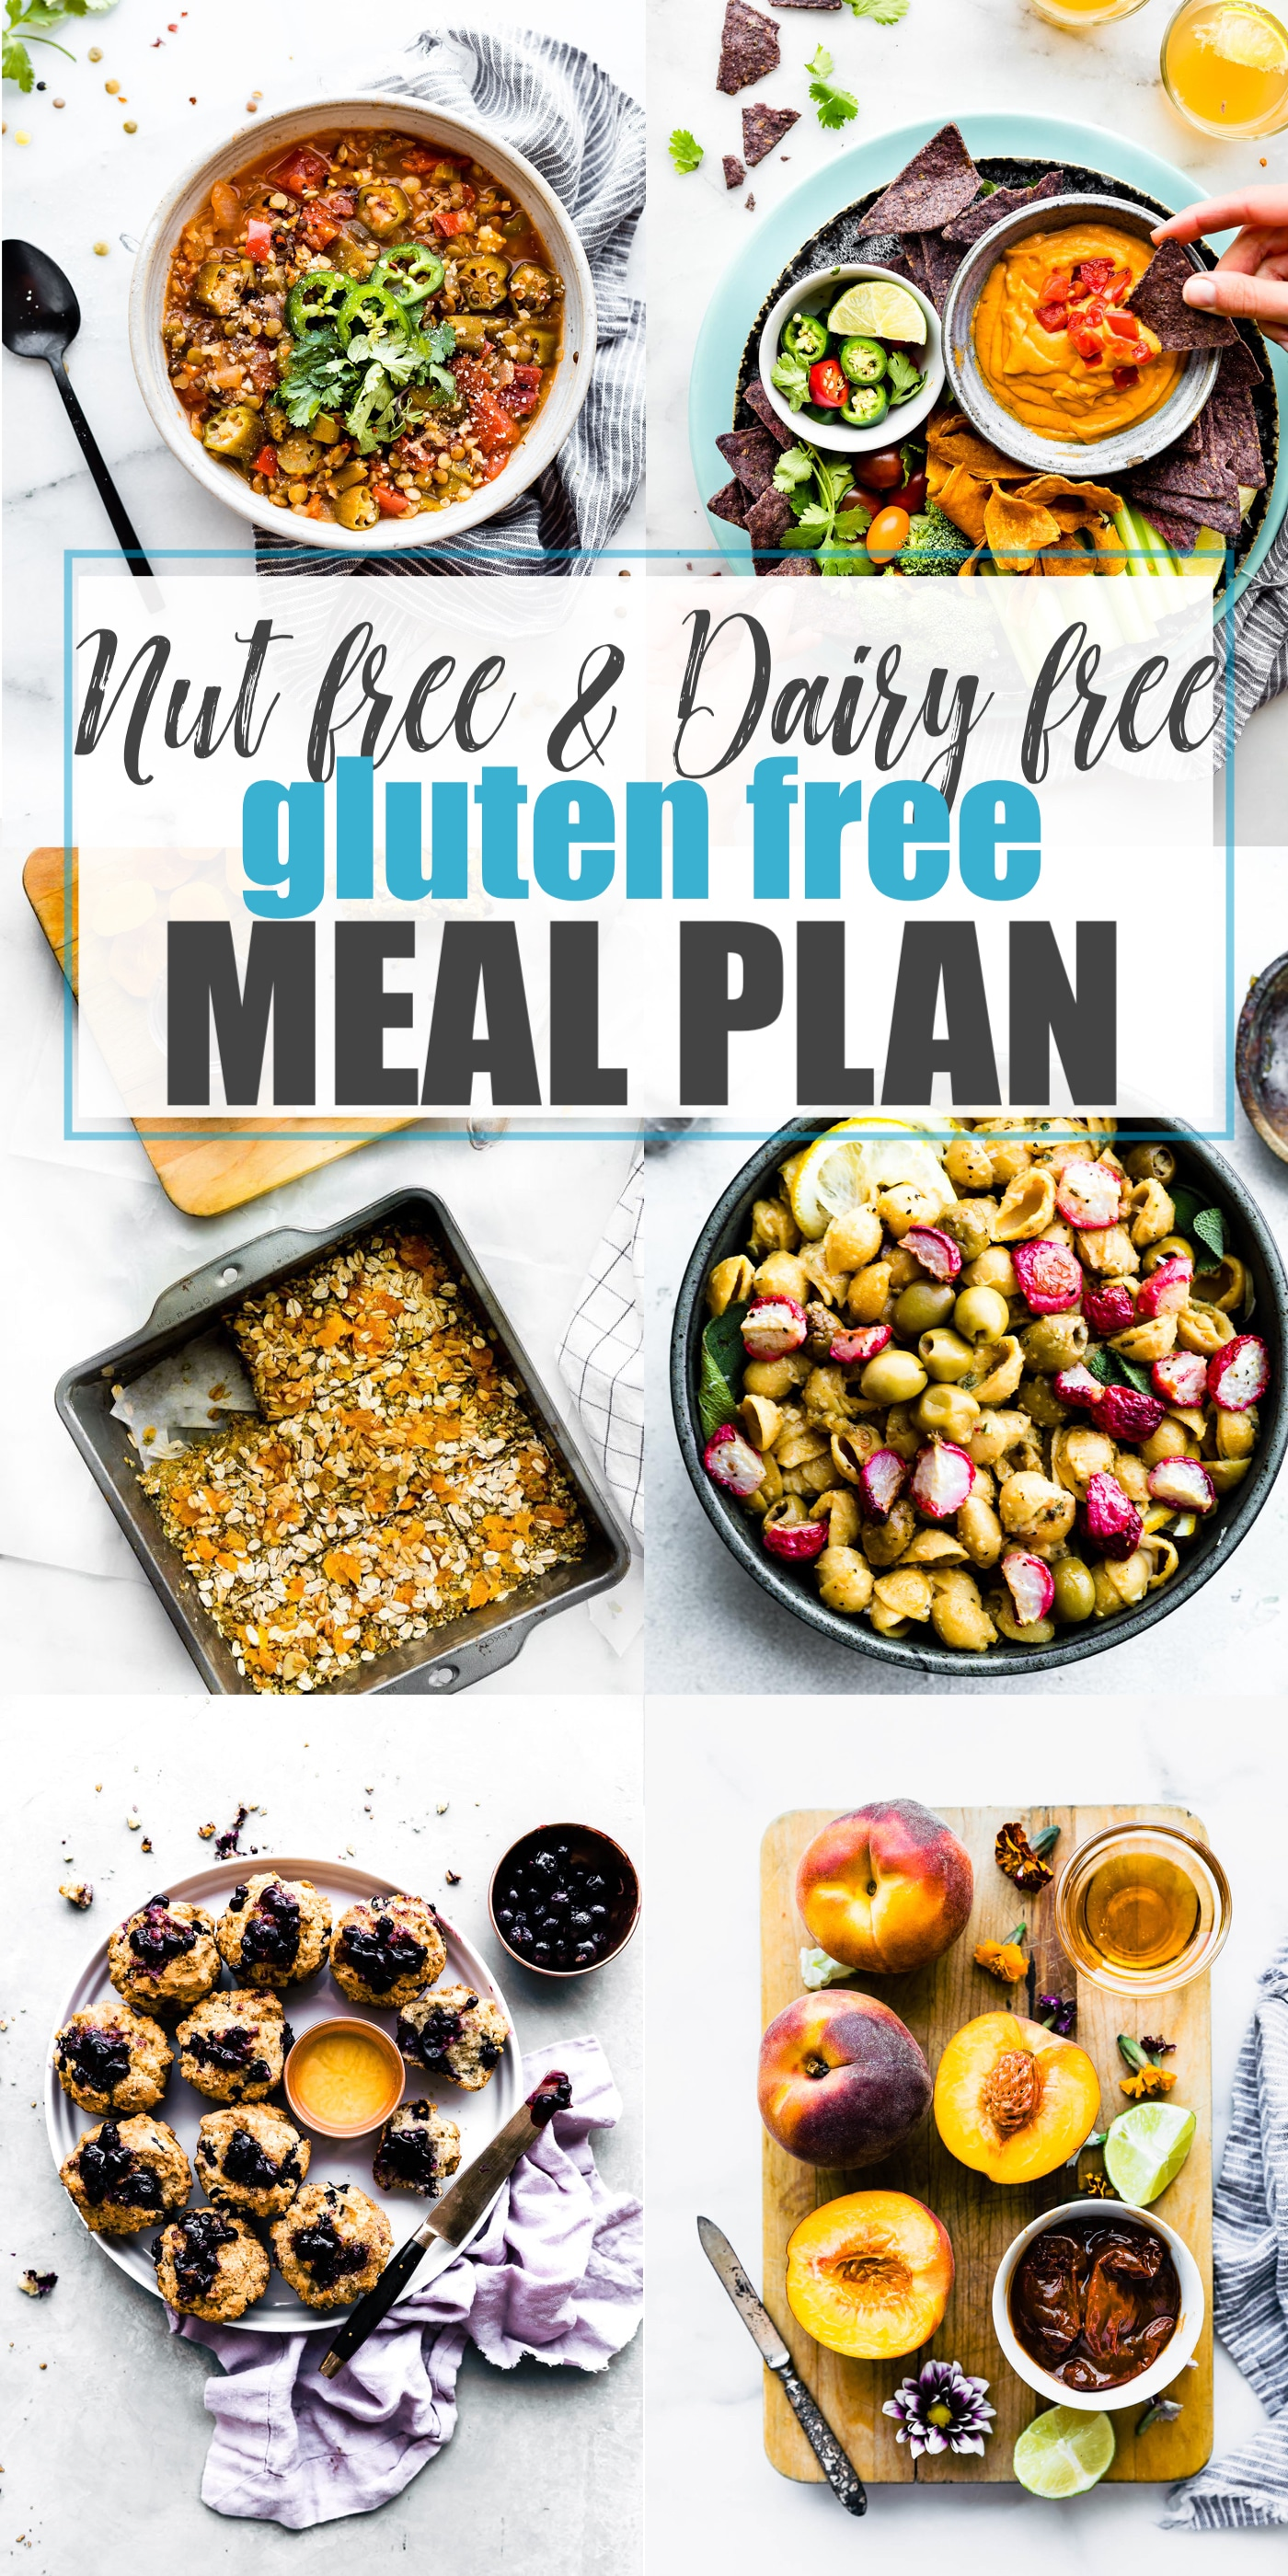 This meal plan for nut and dairy allergies is a requested meal plan from you, my wonderful readers! The healthy recipes (which are always gluten free) in this meal plan are nut free AND dairy free. Delicious meals for breakfasts, lunches, dinners, and snacks for anyone with multiple food allergies.